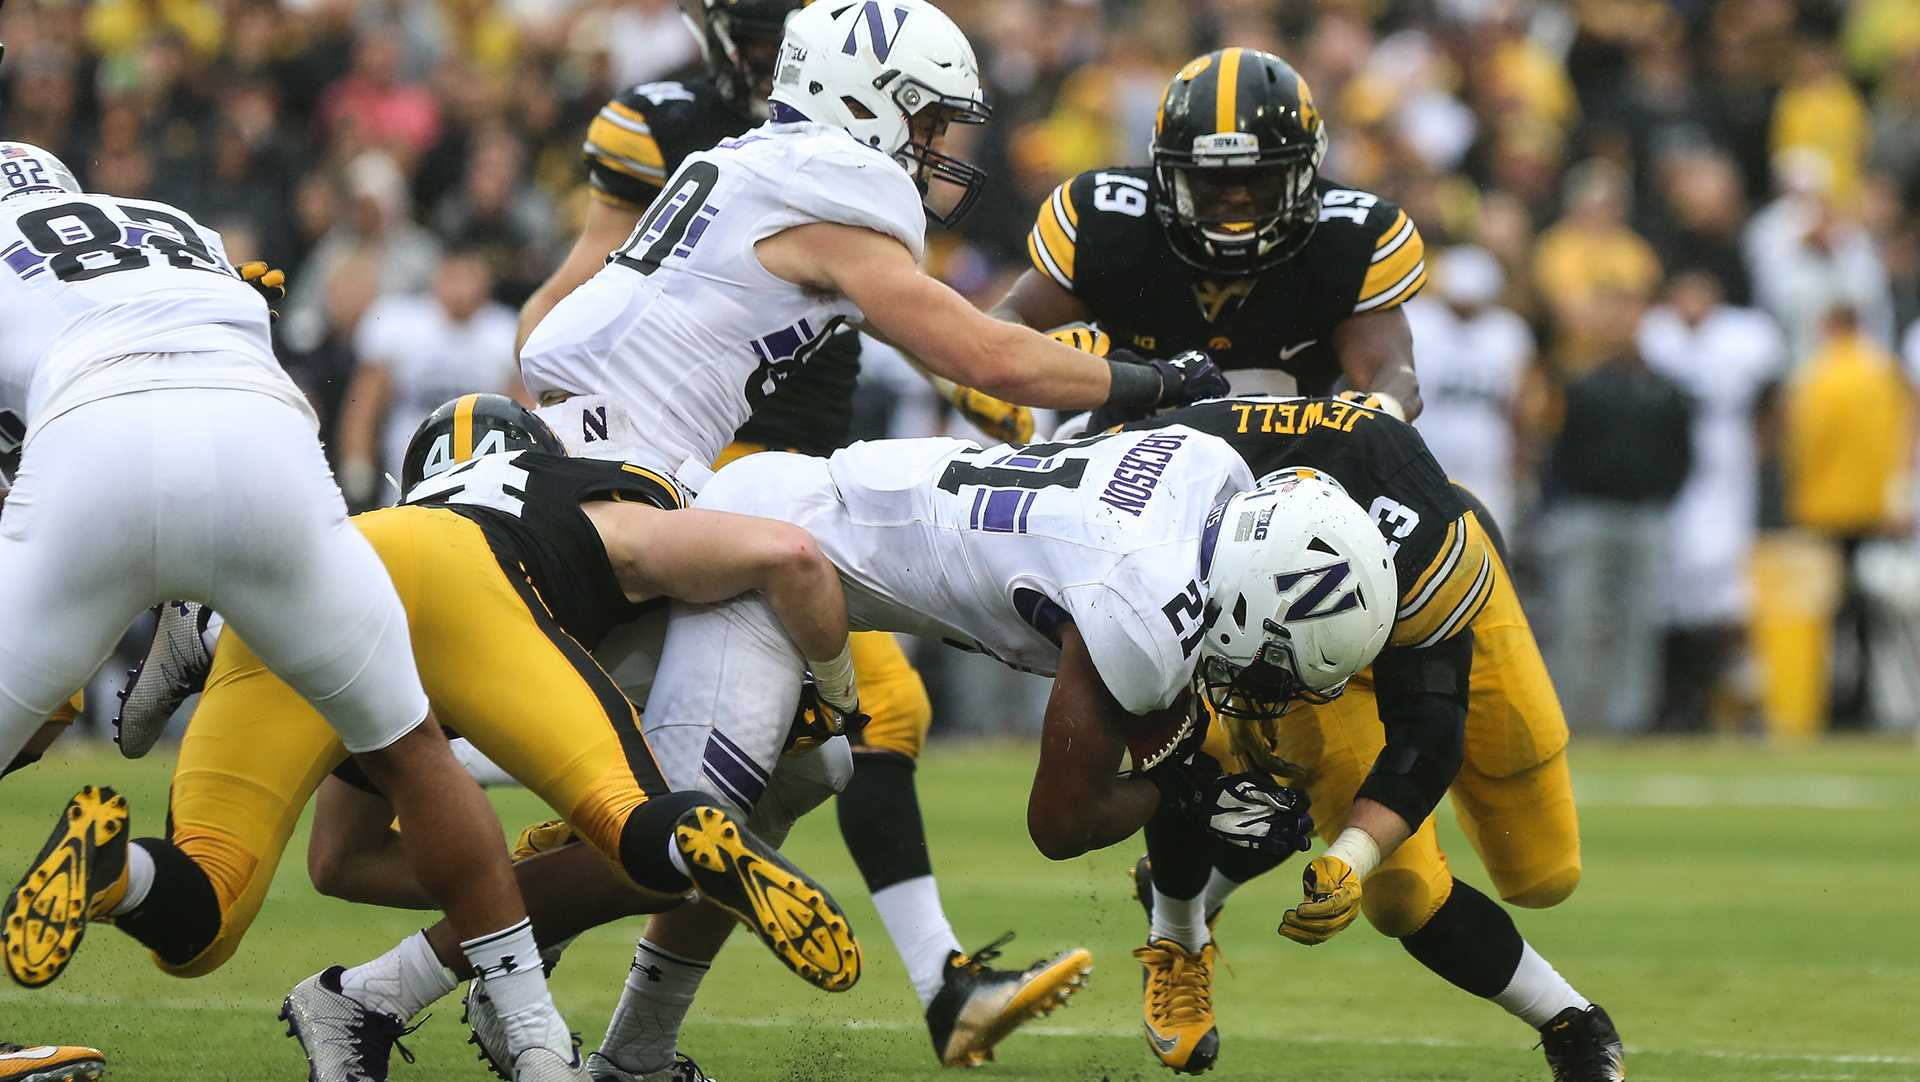 Northwestern running back Justin Jackson crashes into Iowa outside linebacker Josey Jewell during the Iowa v. Northwestern game at Kinnick Stadium on Saturday, Oct. 1, 2016. The Hawkeyes fell to the Wildcats 38-31. (The Daily Iowan/Anthony Vazquez)